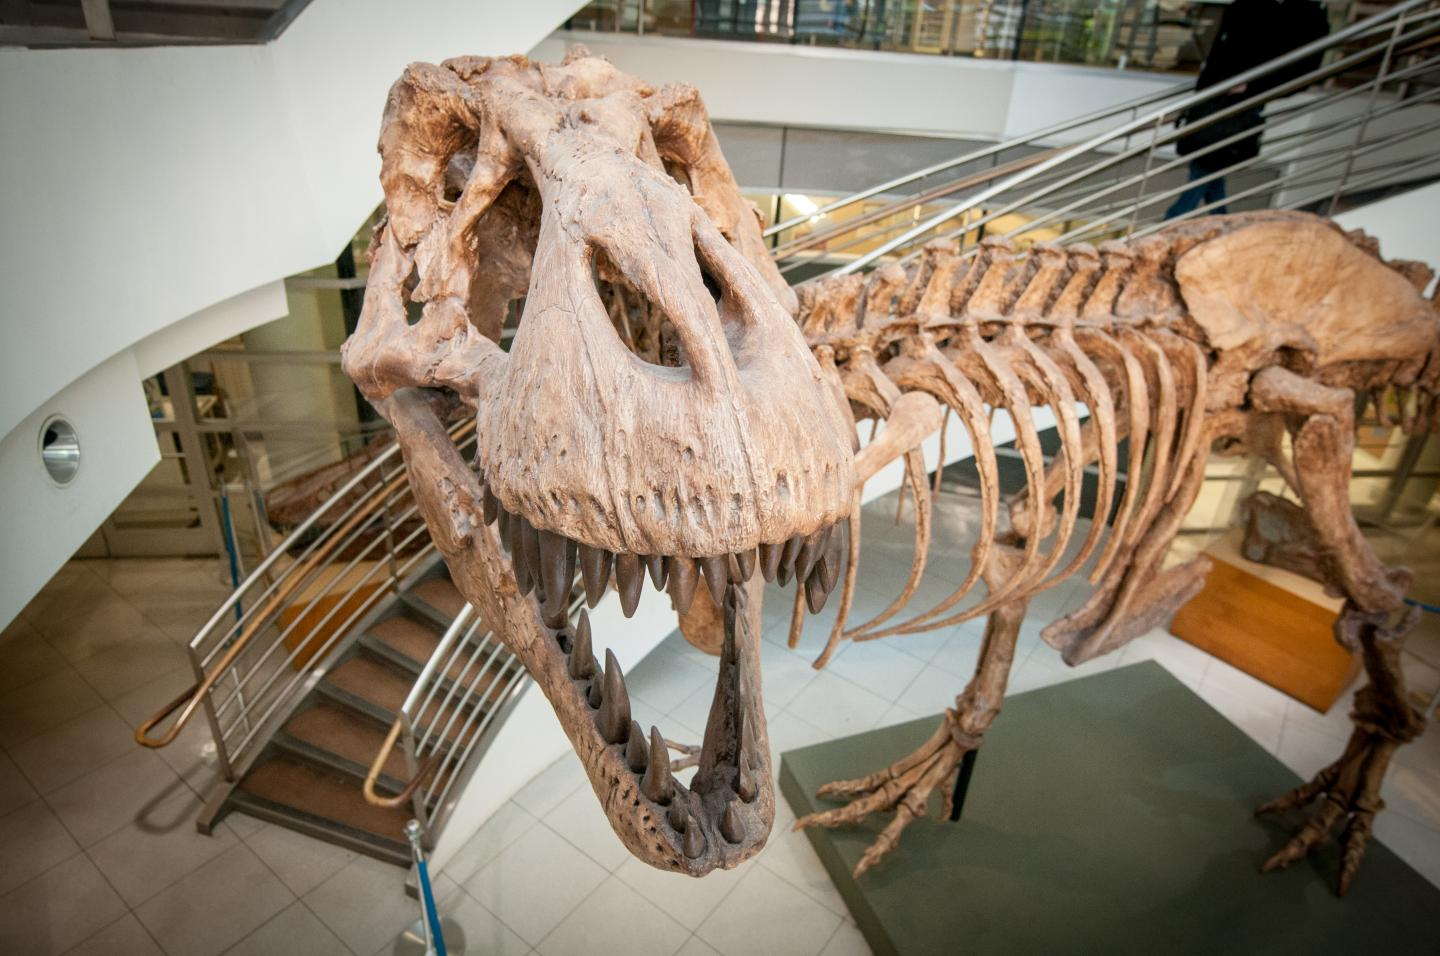 a look from above at a t.rex skeleton in a museum